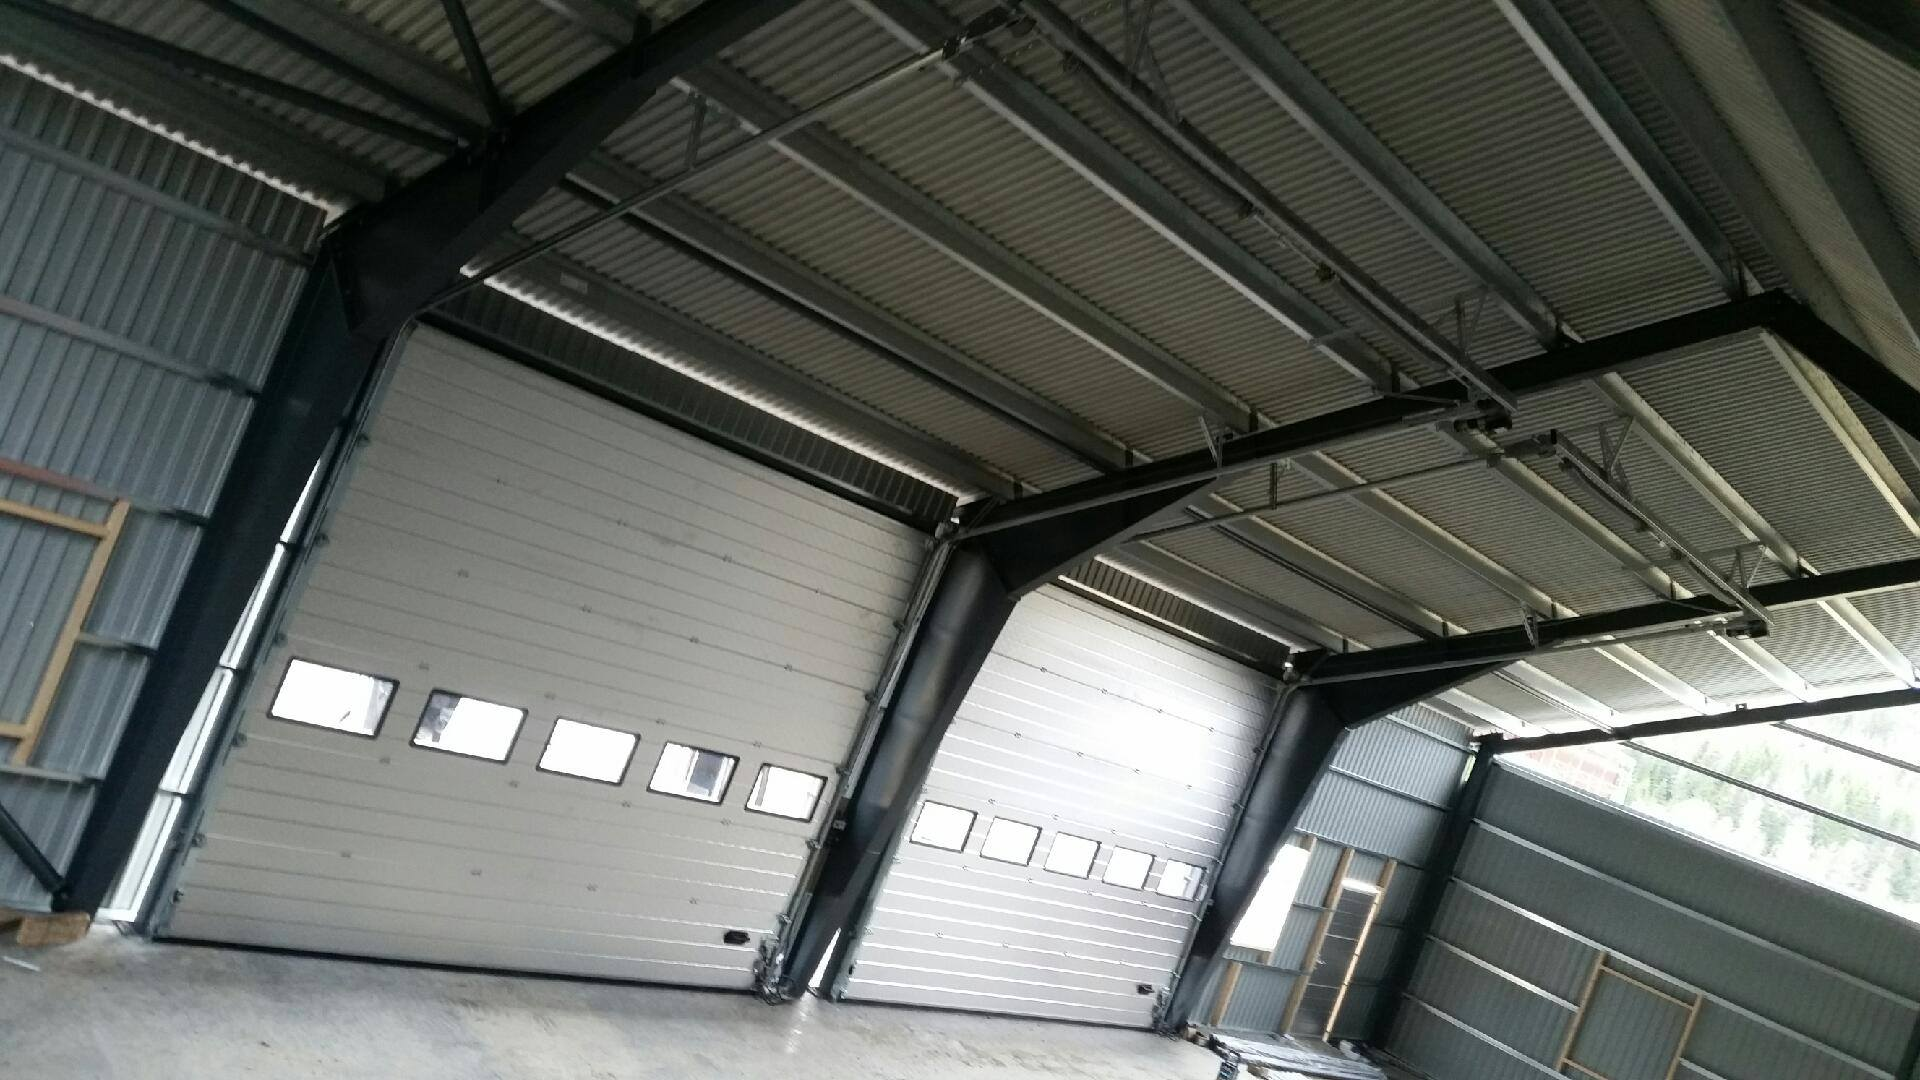 Industrial Doors NASSAU 9000F With Windows Interior